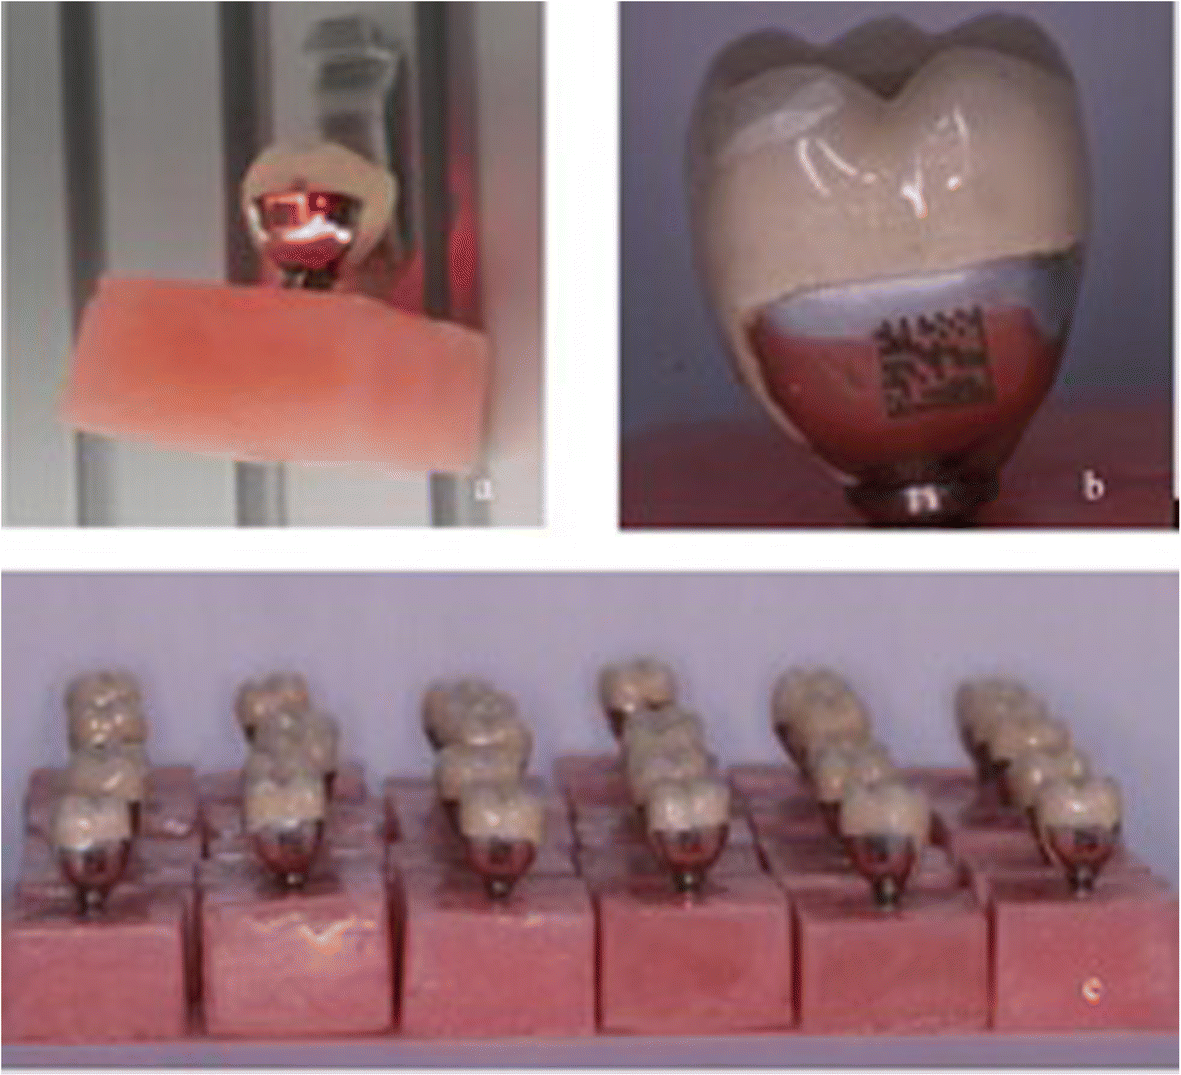 Implementation of a prosthetic labelling process in implant